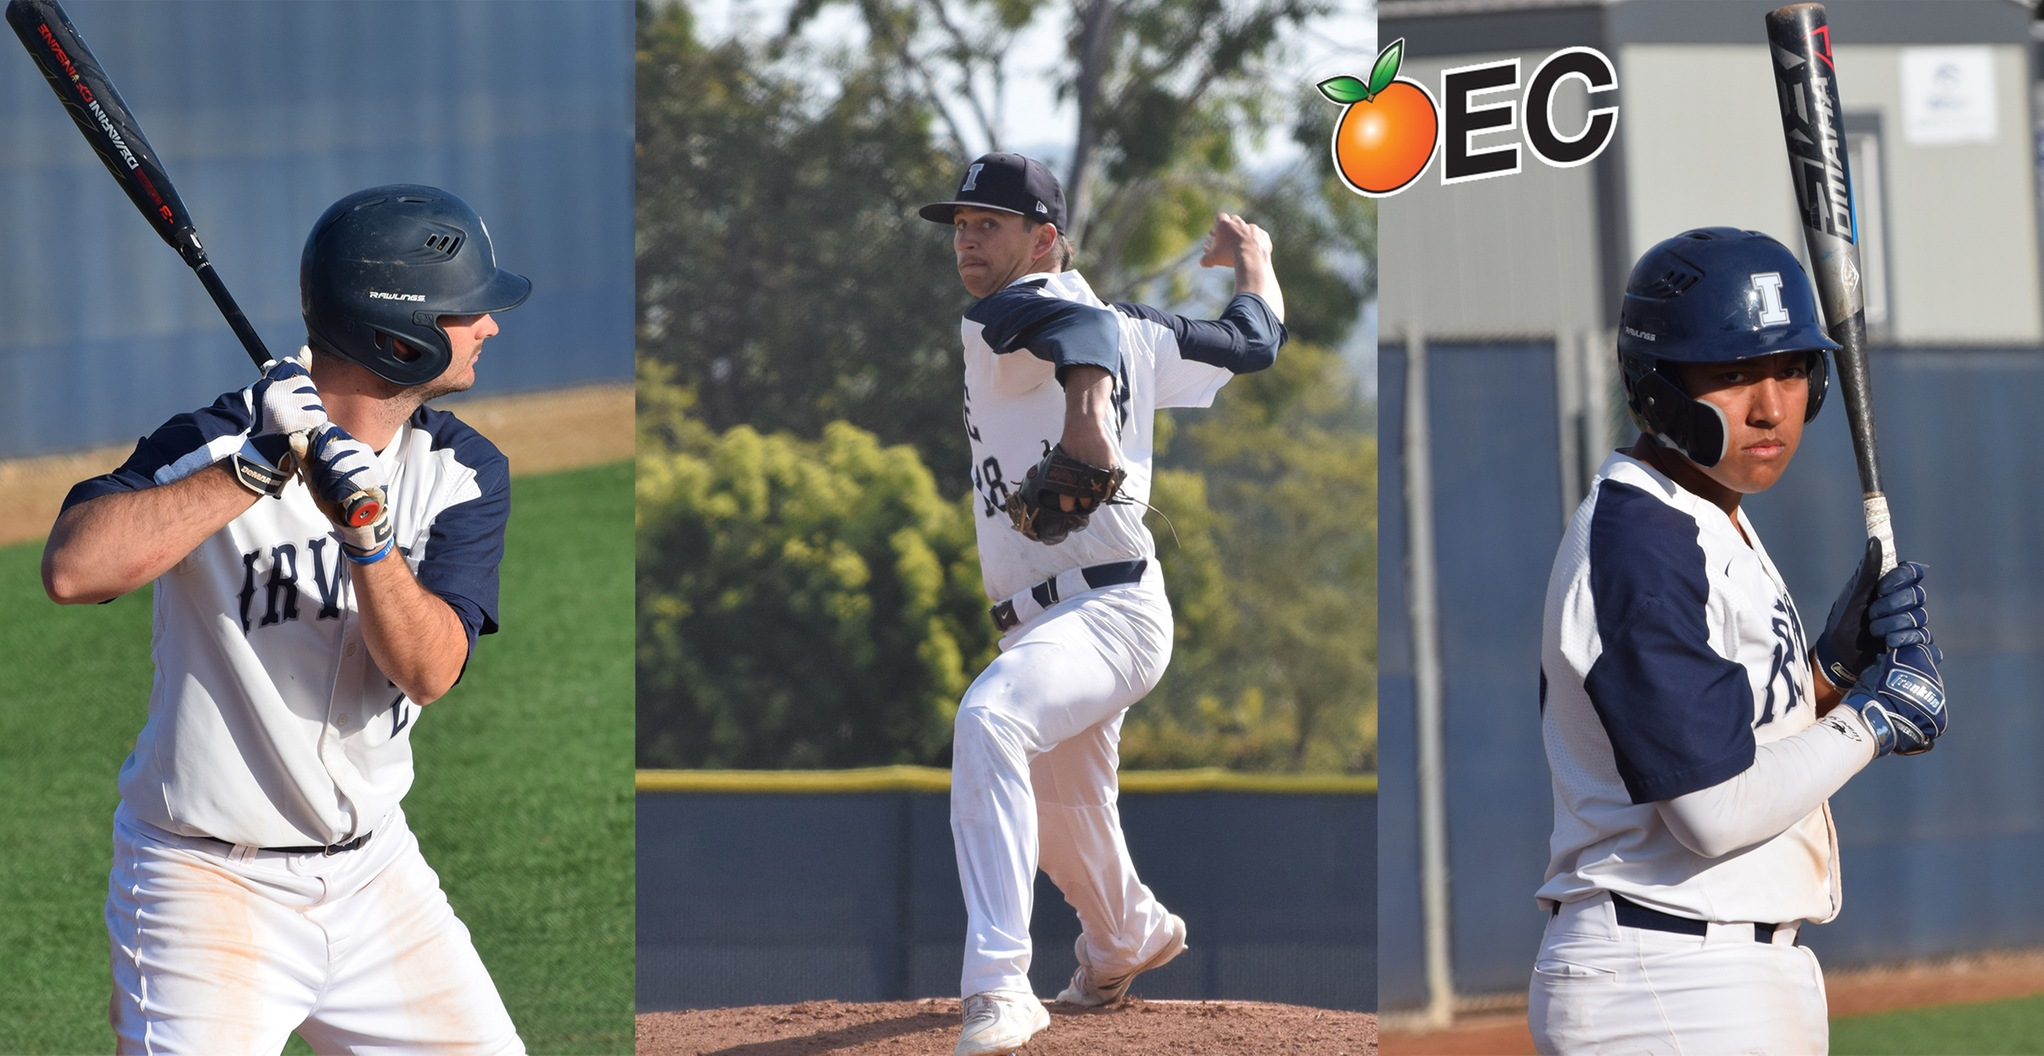 Dobson, Dunham and De Sa named to all-OEC baseball squads